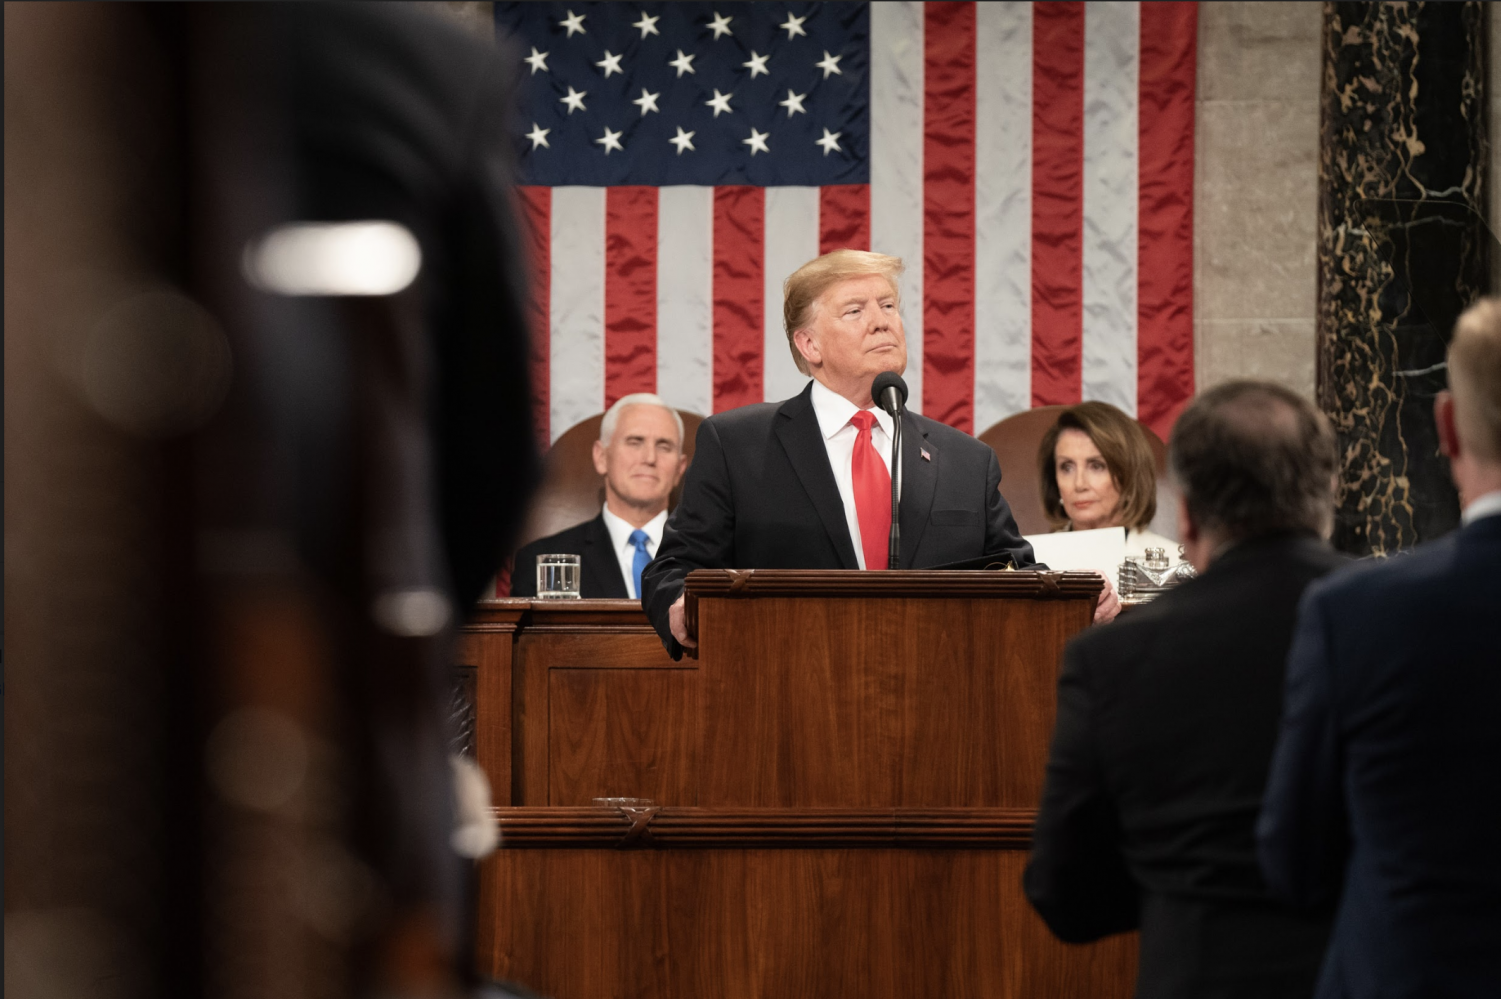 President Donald Trump delivering the State of the Union on Feb. 5.